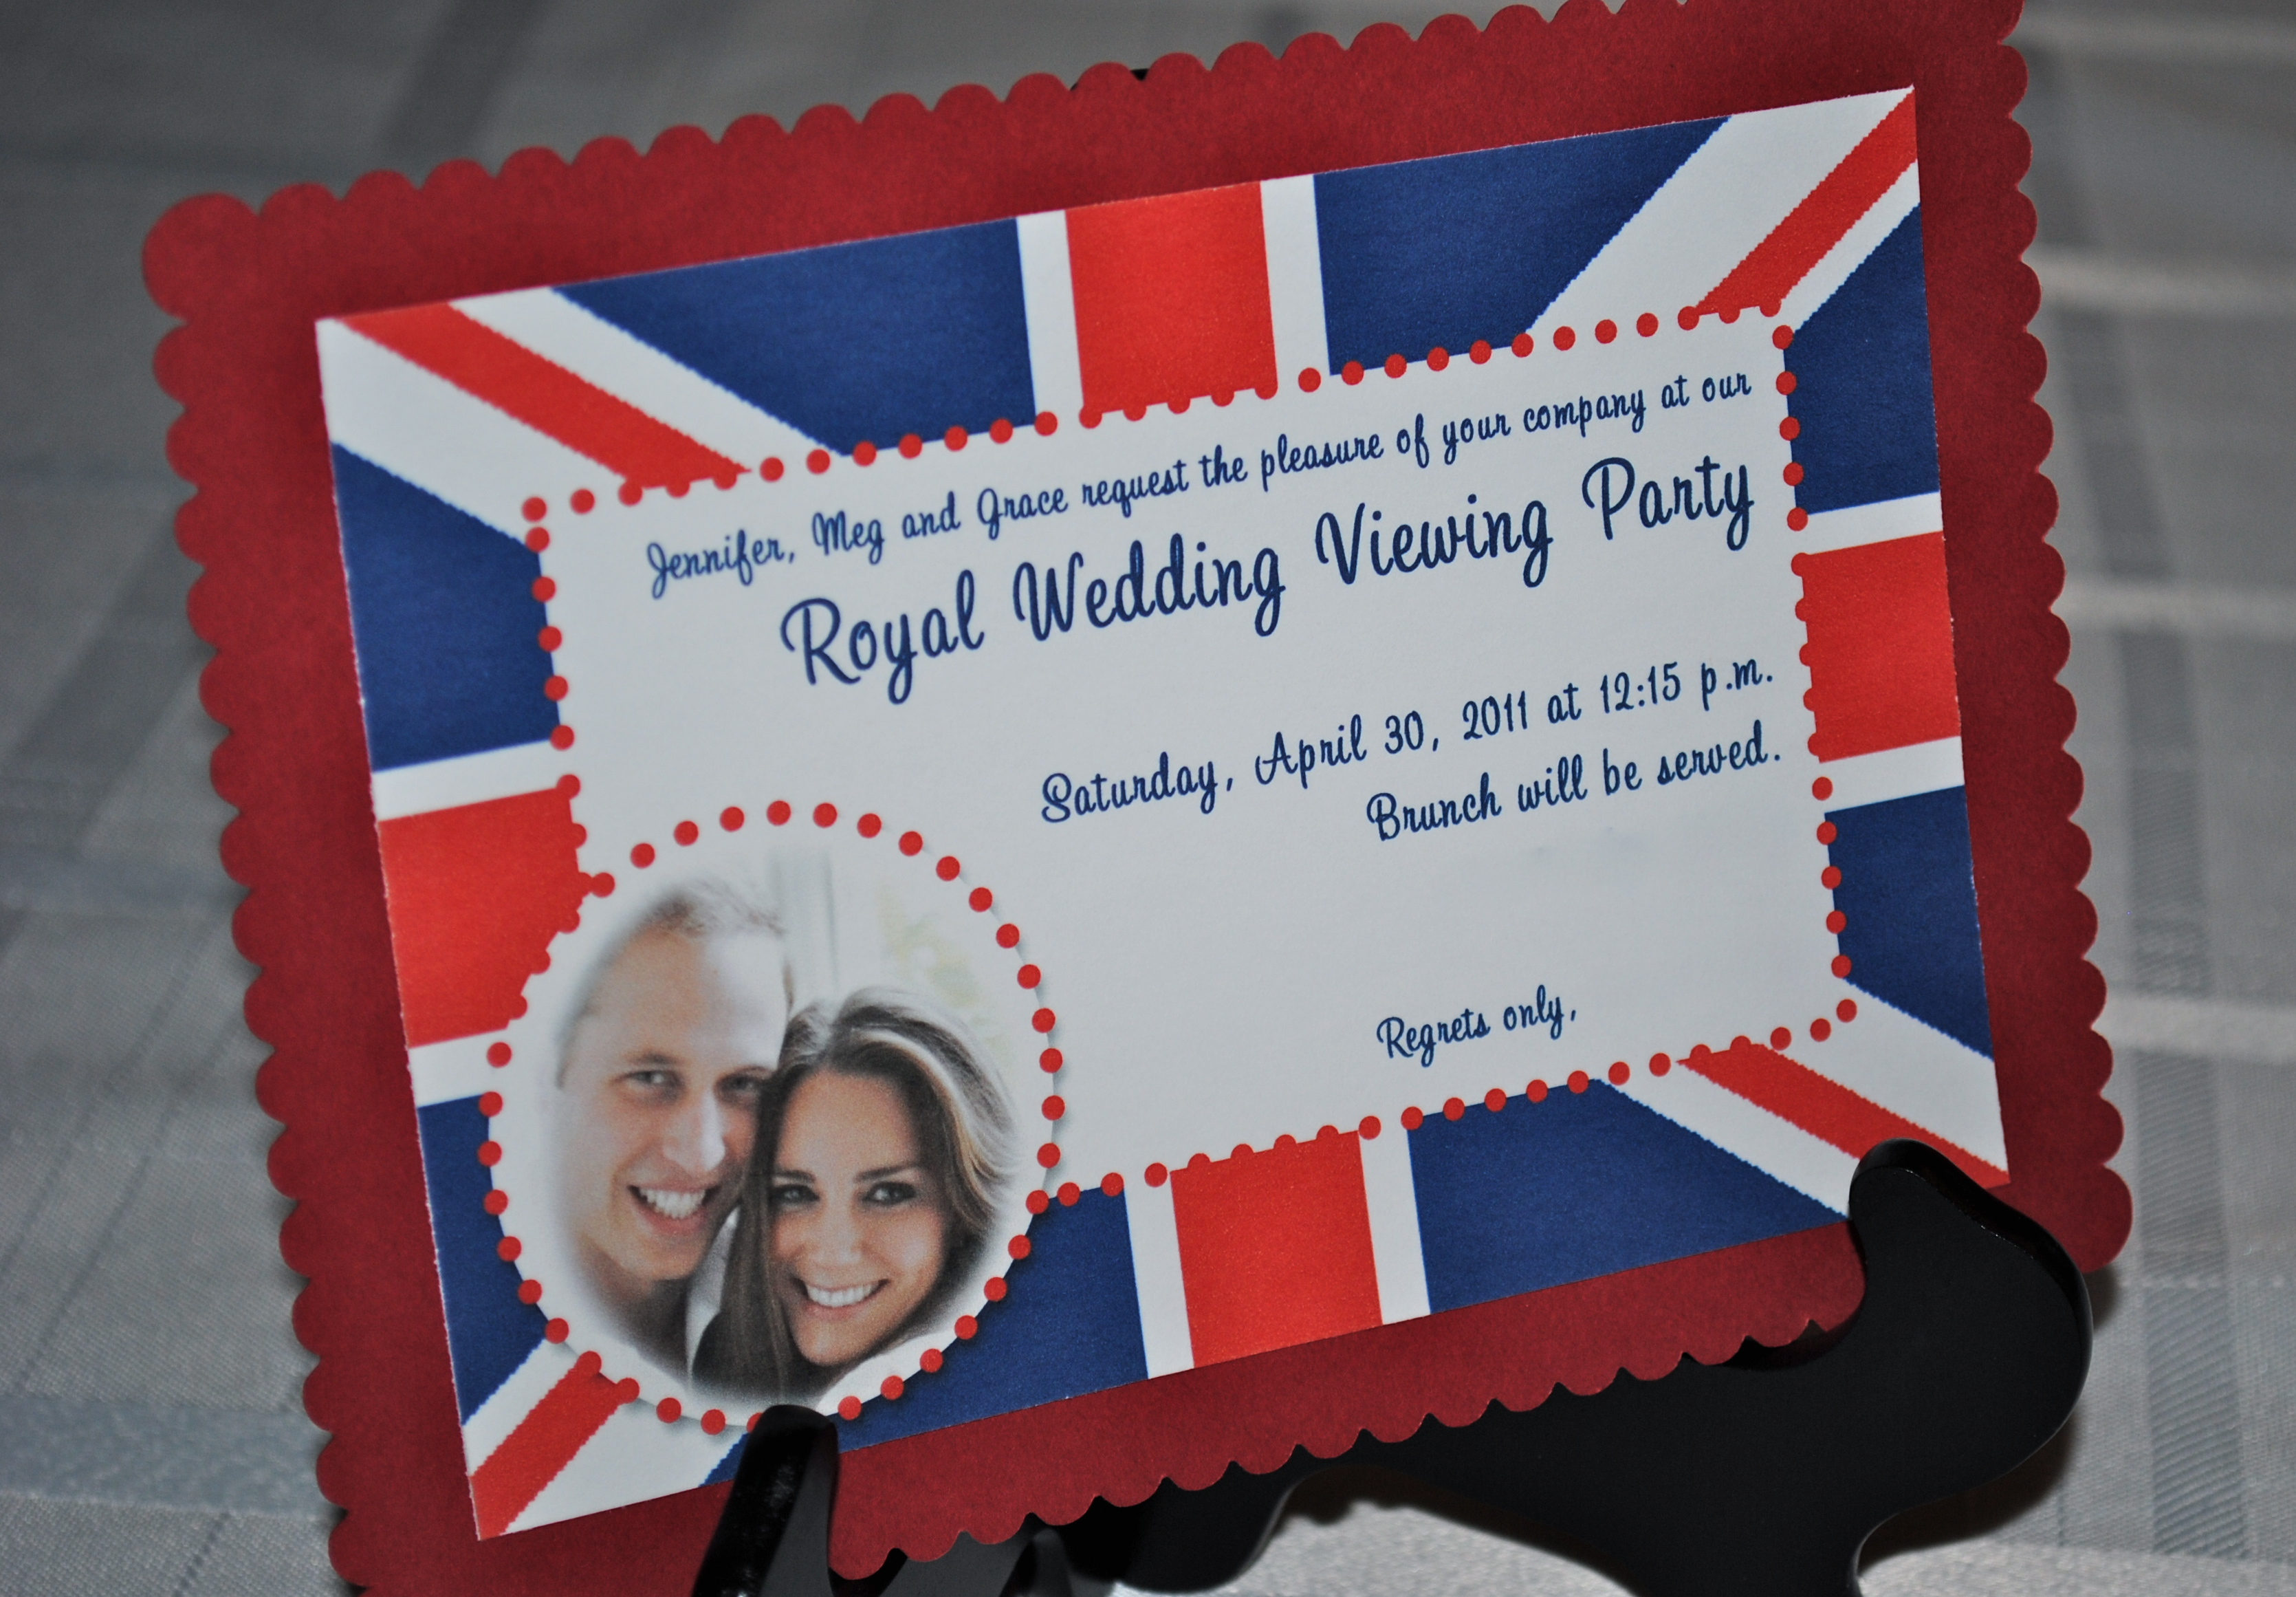 dsc 0004 2 - Royal Wedding Viewing Figures